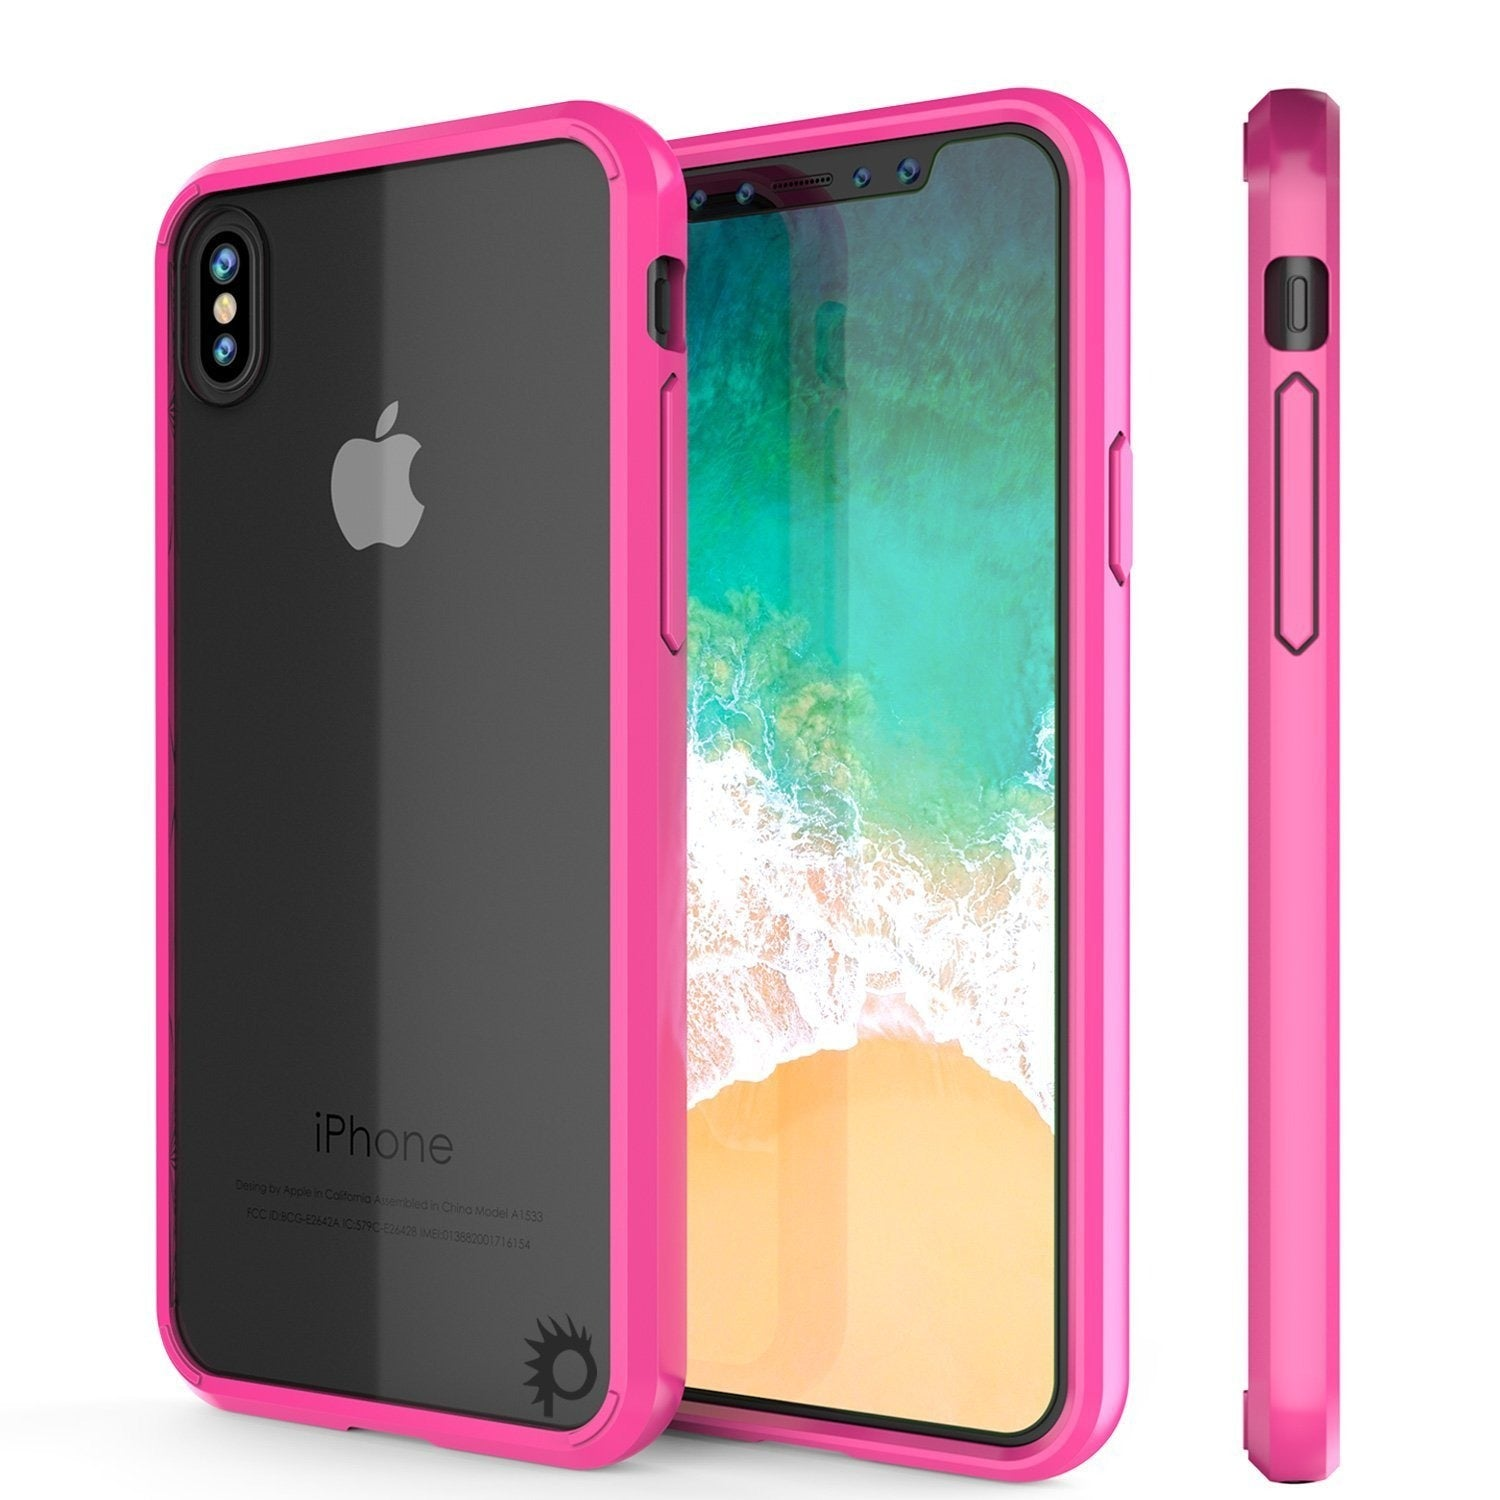 iPhone XR Case, PUNKcase [Lucid 2.0 Series] [Slim Fit] Armor Cover [Pink]